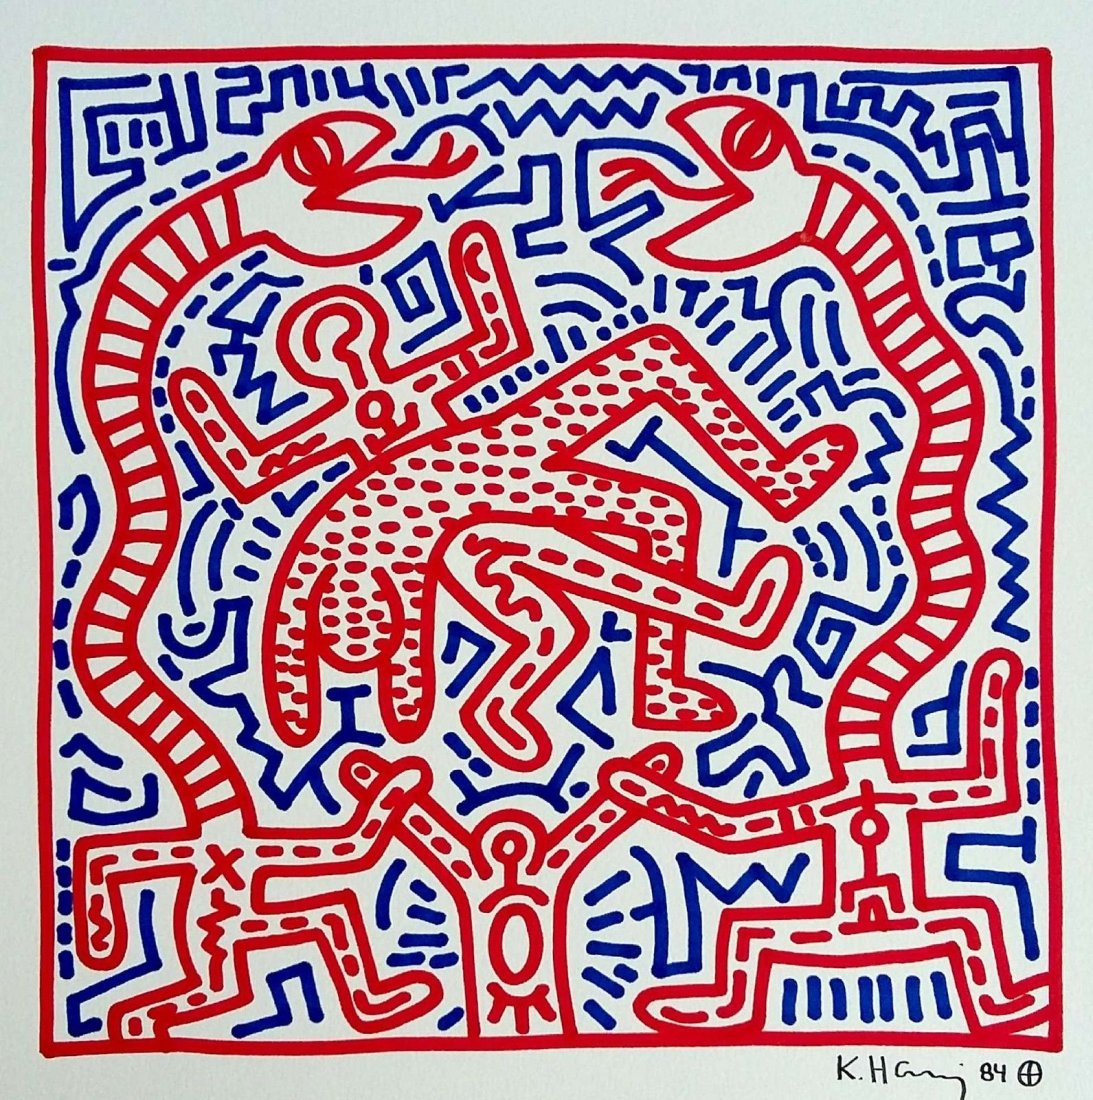 KEITH HARING: SERPENT AND MAN.